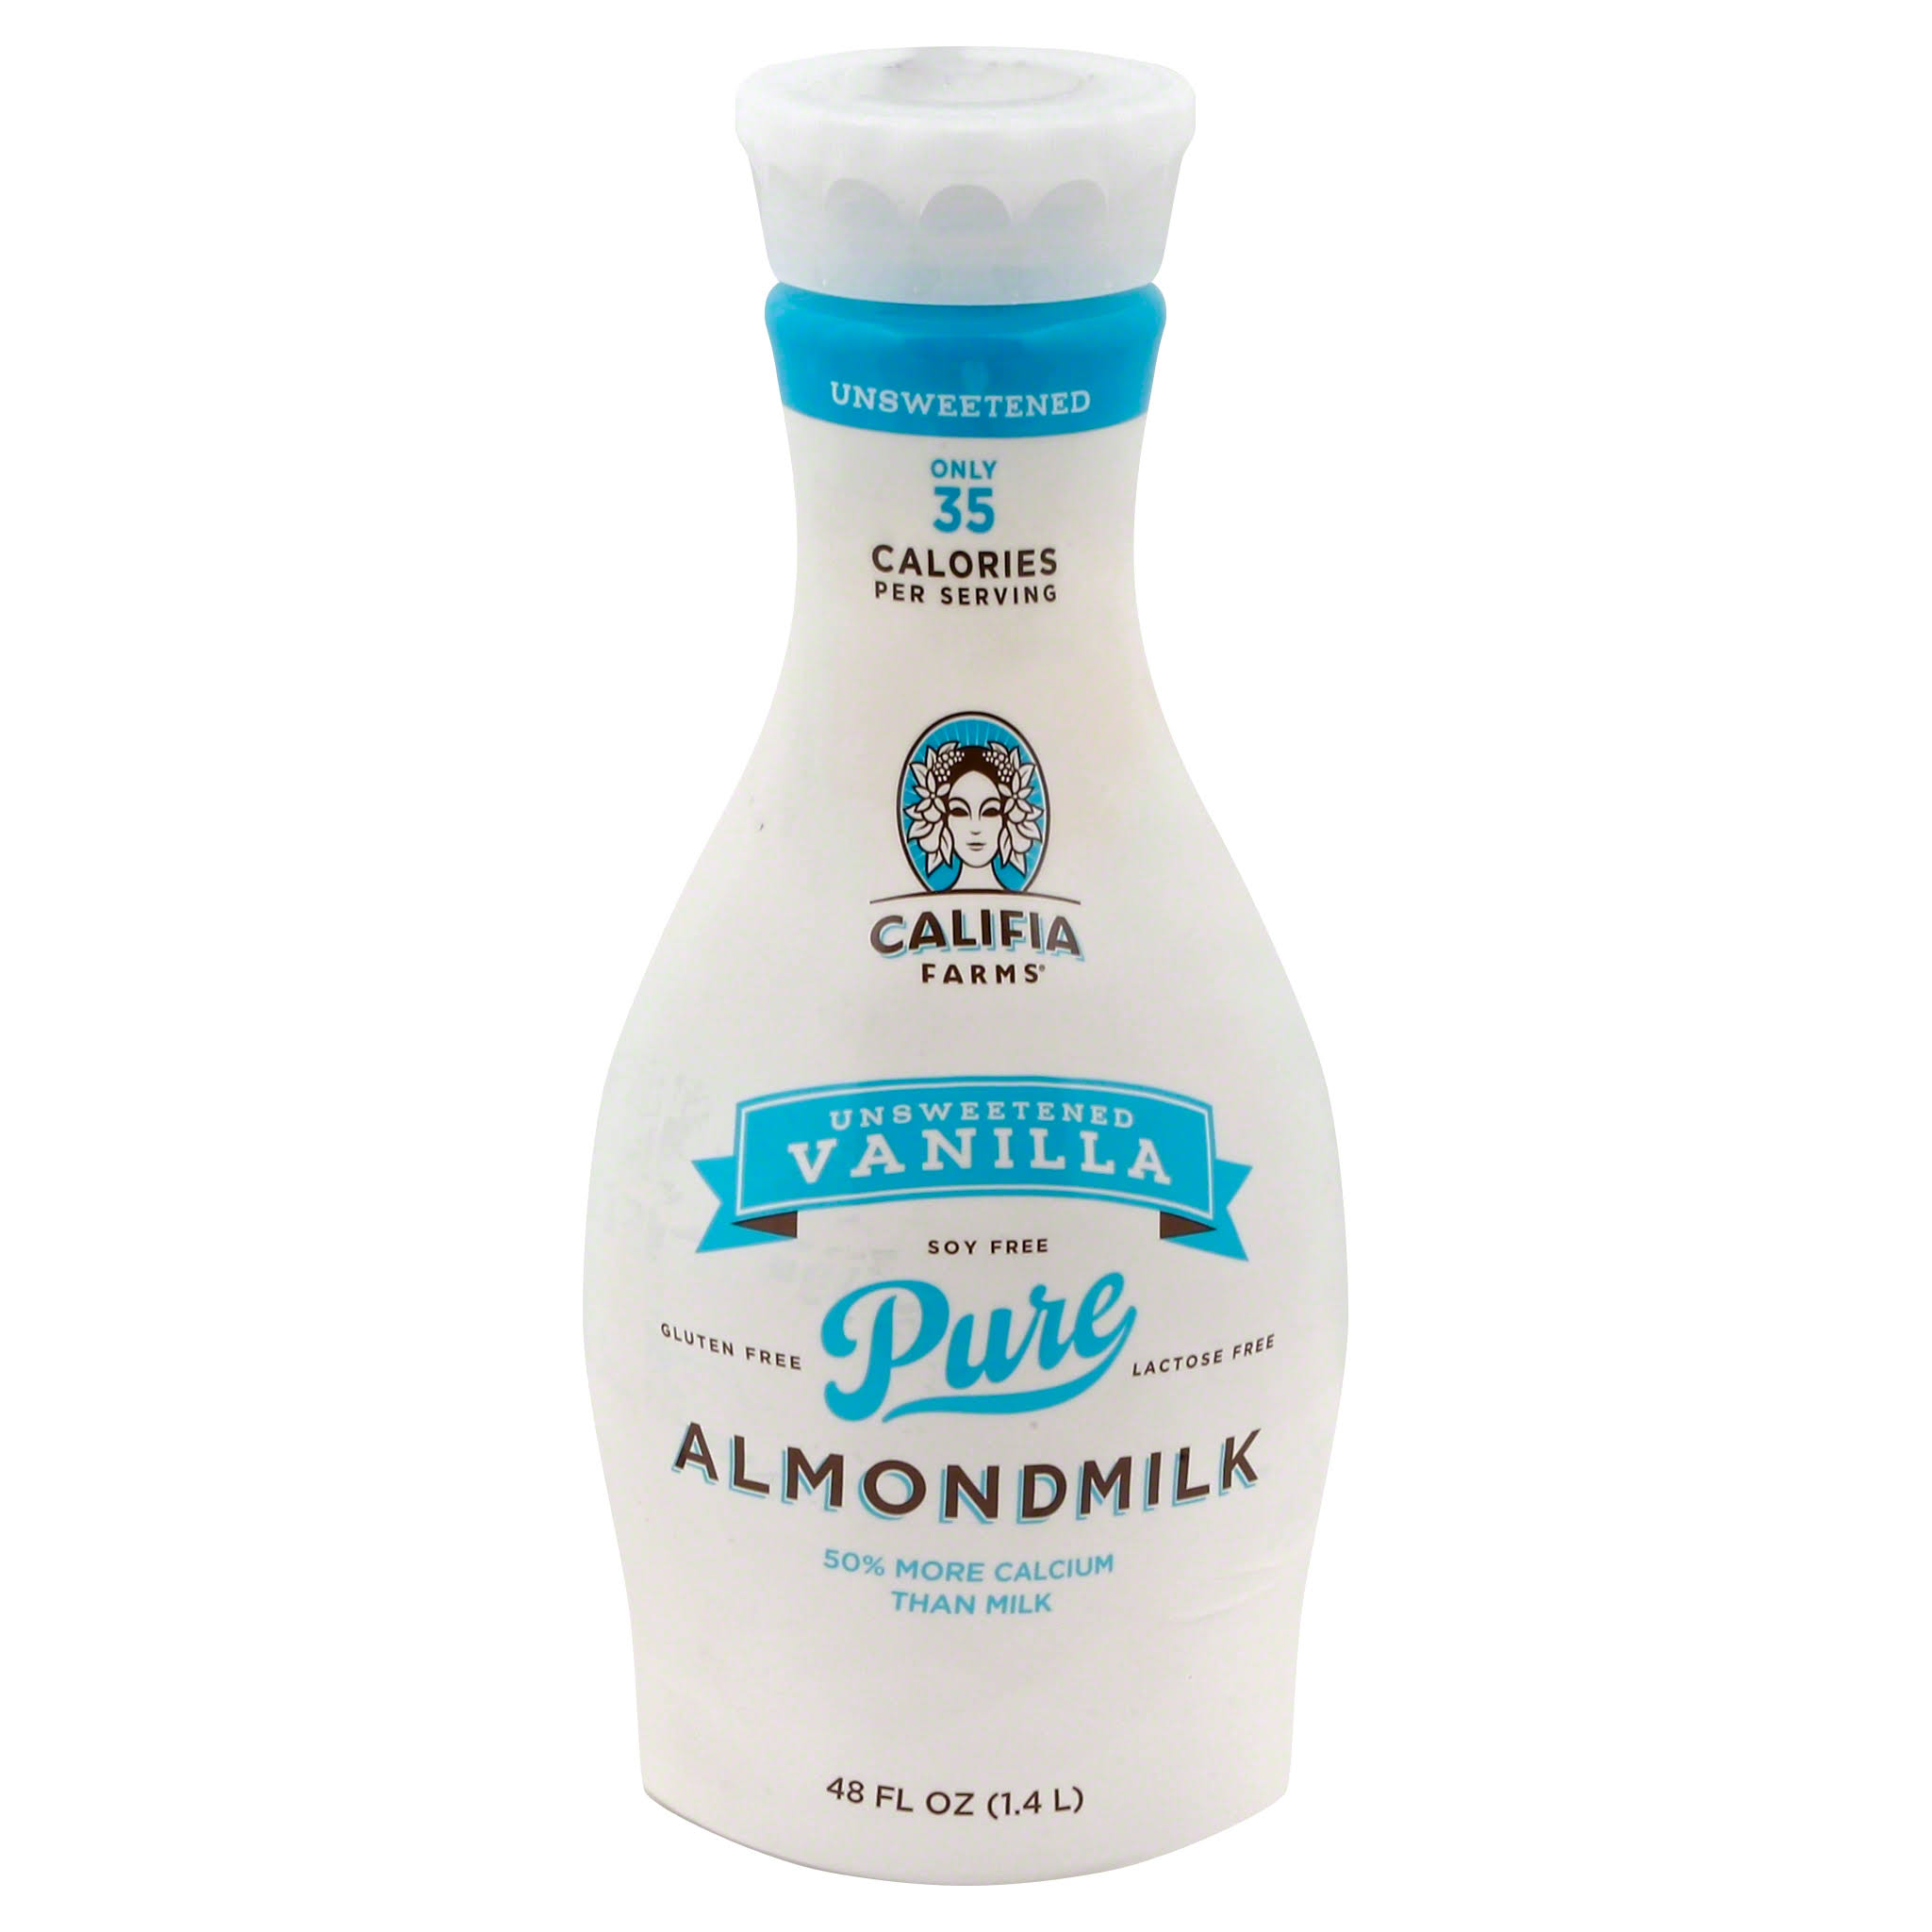 Califia Farms Almond Milk - Unsweetened Vanilla, 48oz